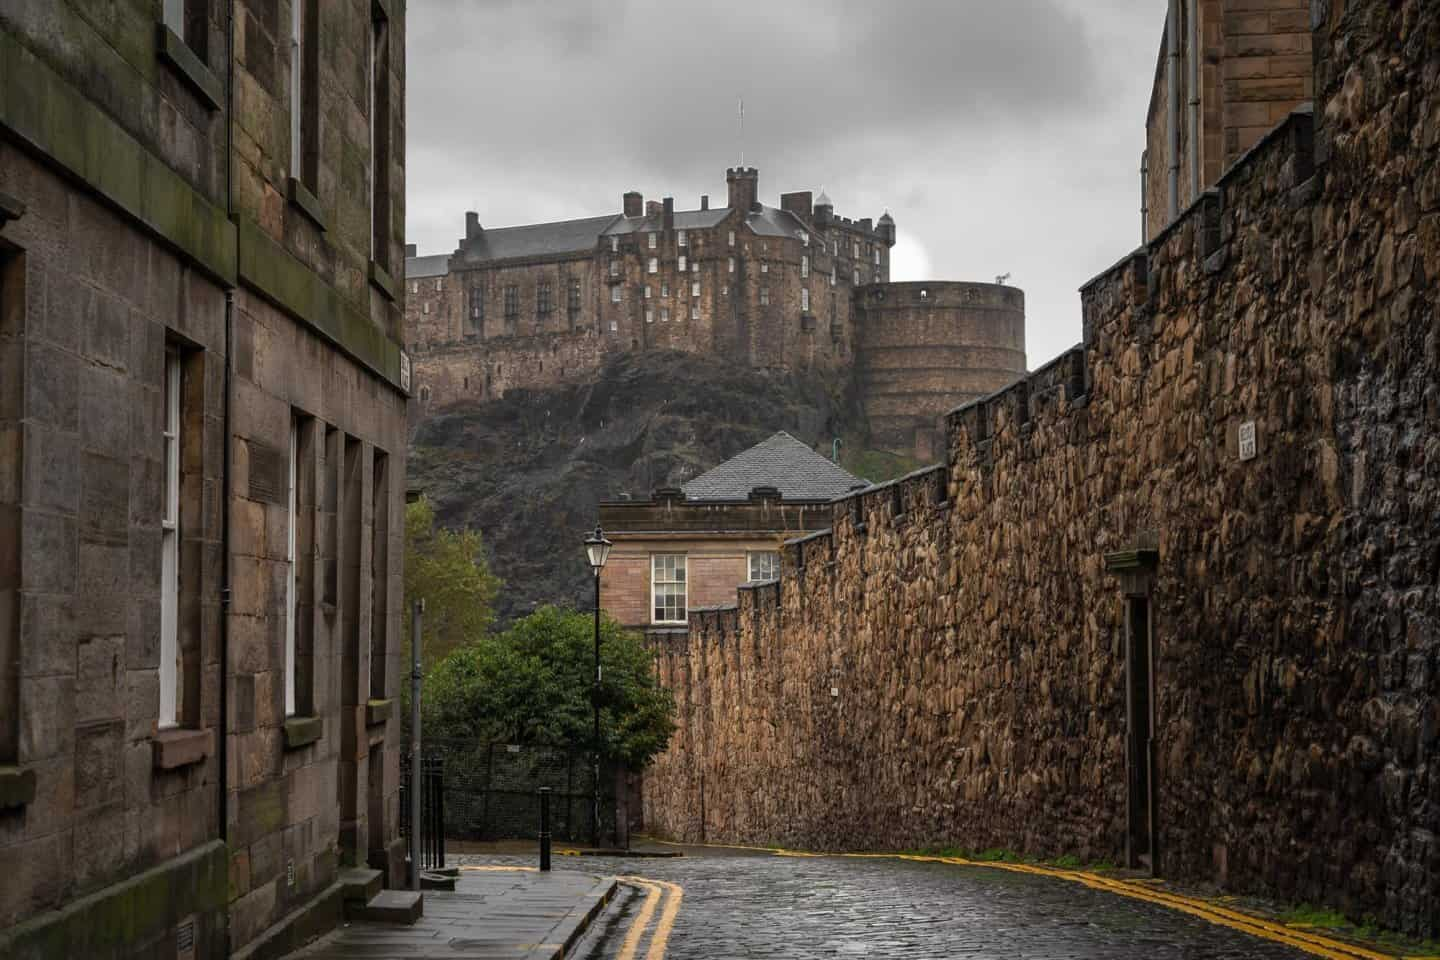 A stunning city view of old town Edinburgh with Edinburgh Castle looming in the background.